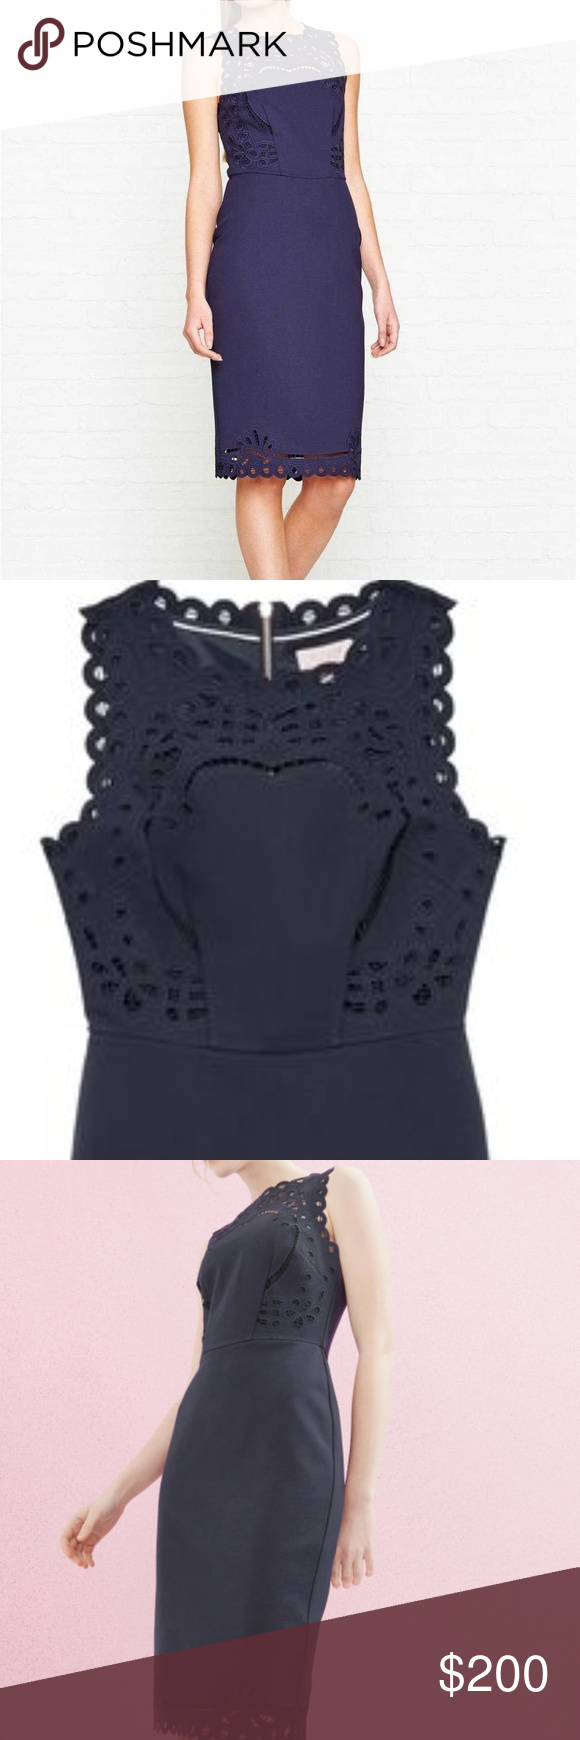 Ted baker cut out detail bodycon dress